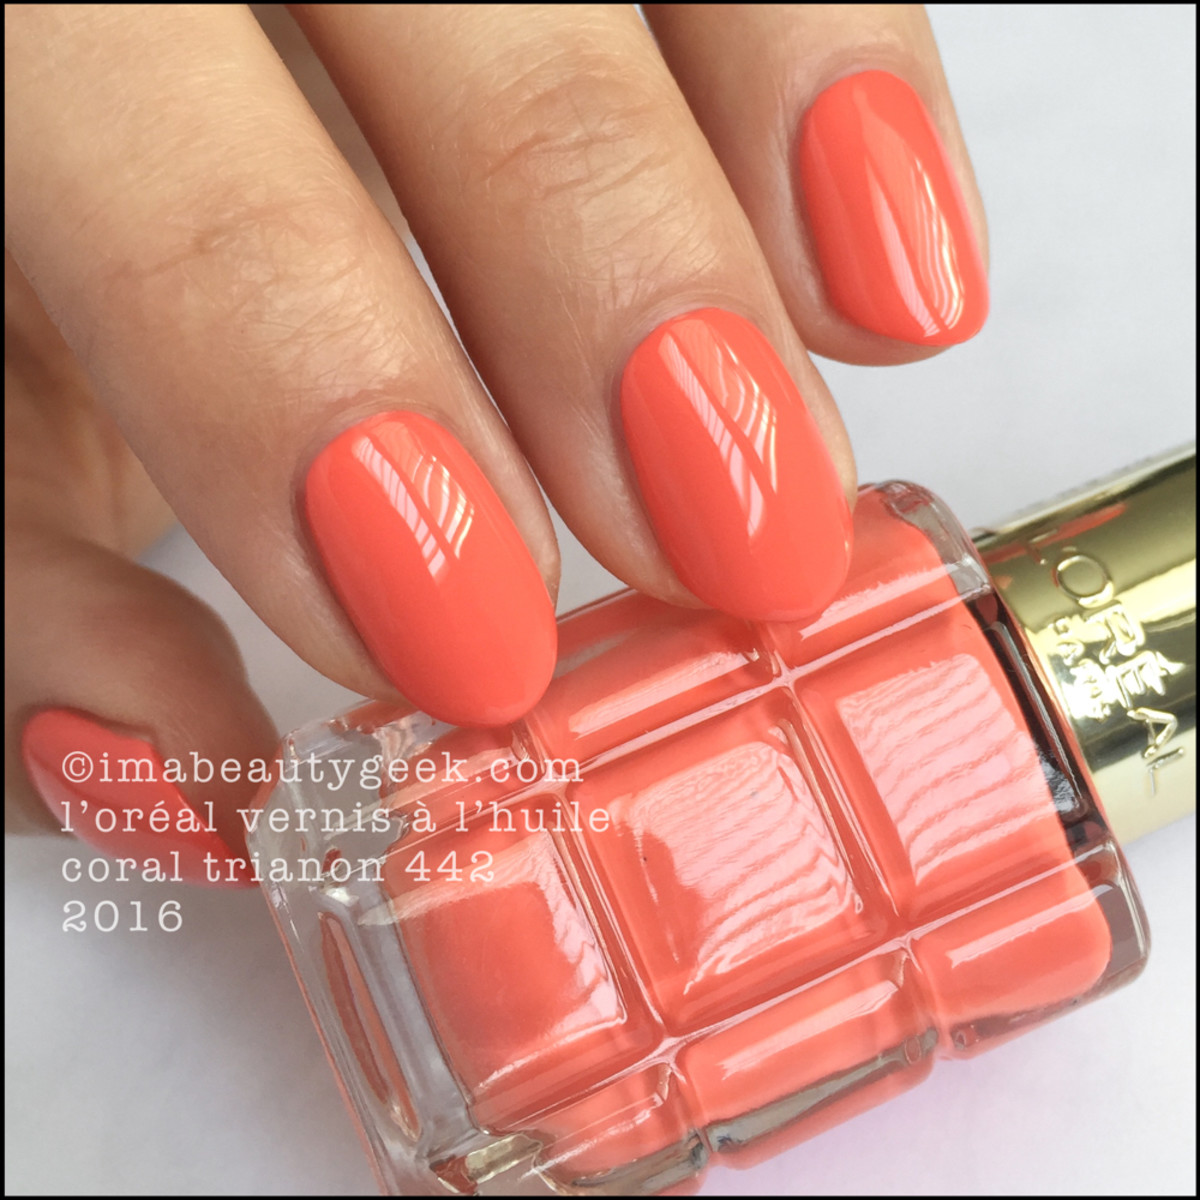 LOreal Vernis a LHuile Nail Polish Swatches_LOreal Coral Trianon 442 2016